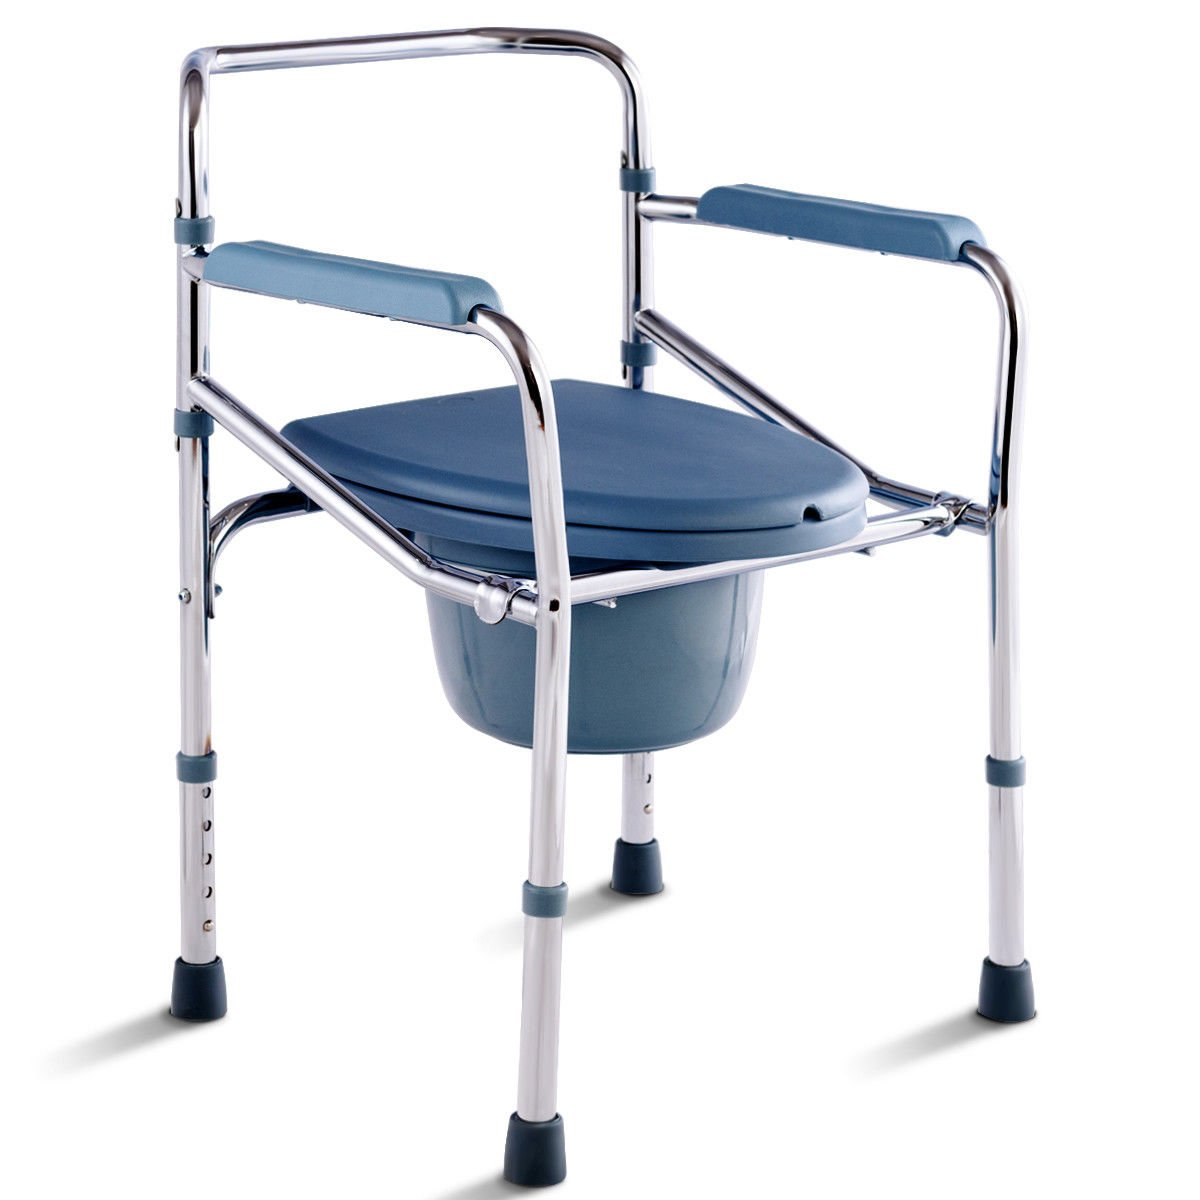 5 Level Height Adjustable Foldable Design Bedside Commode Seat Toilet Potty Chair With Bucket Splash Guard Versatile Multifunctional Portable Elderly Disabled Handicapped People Hospital Medical Chair by Auténtico (Image #1)